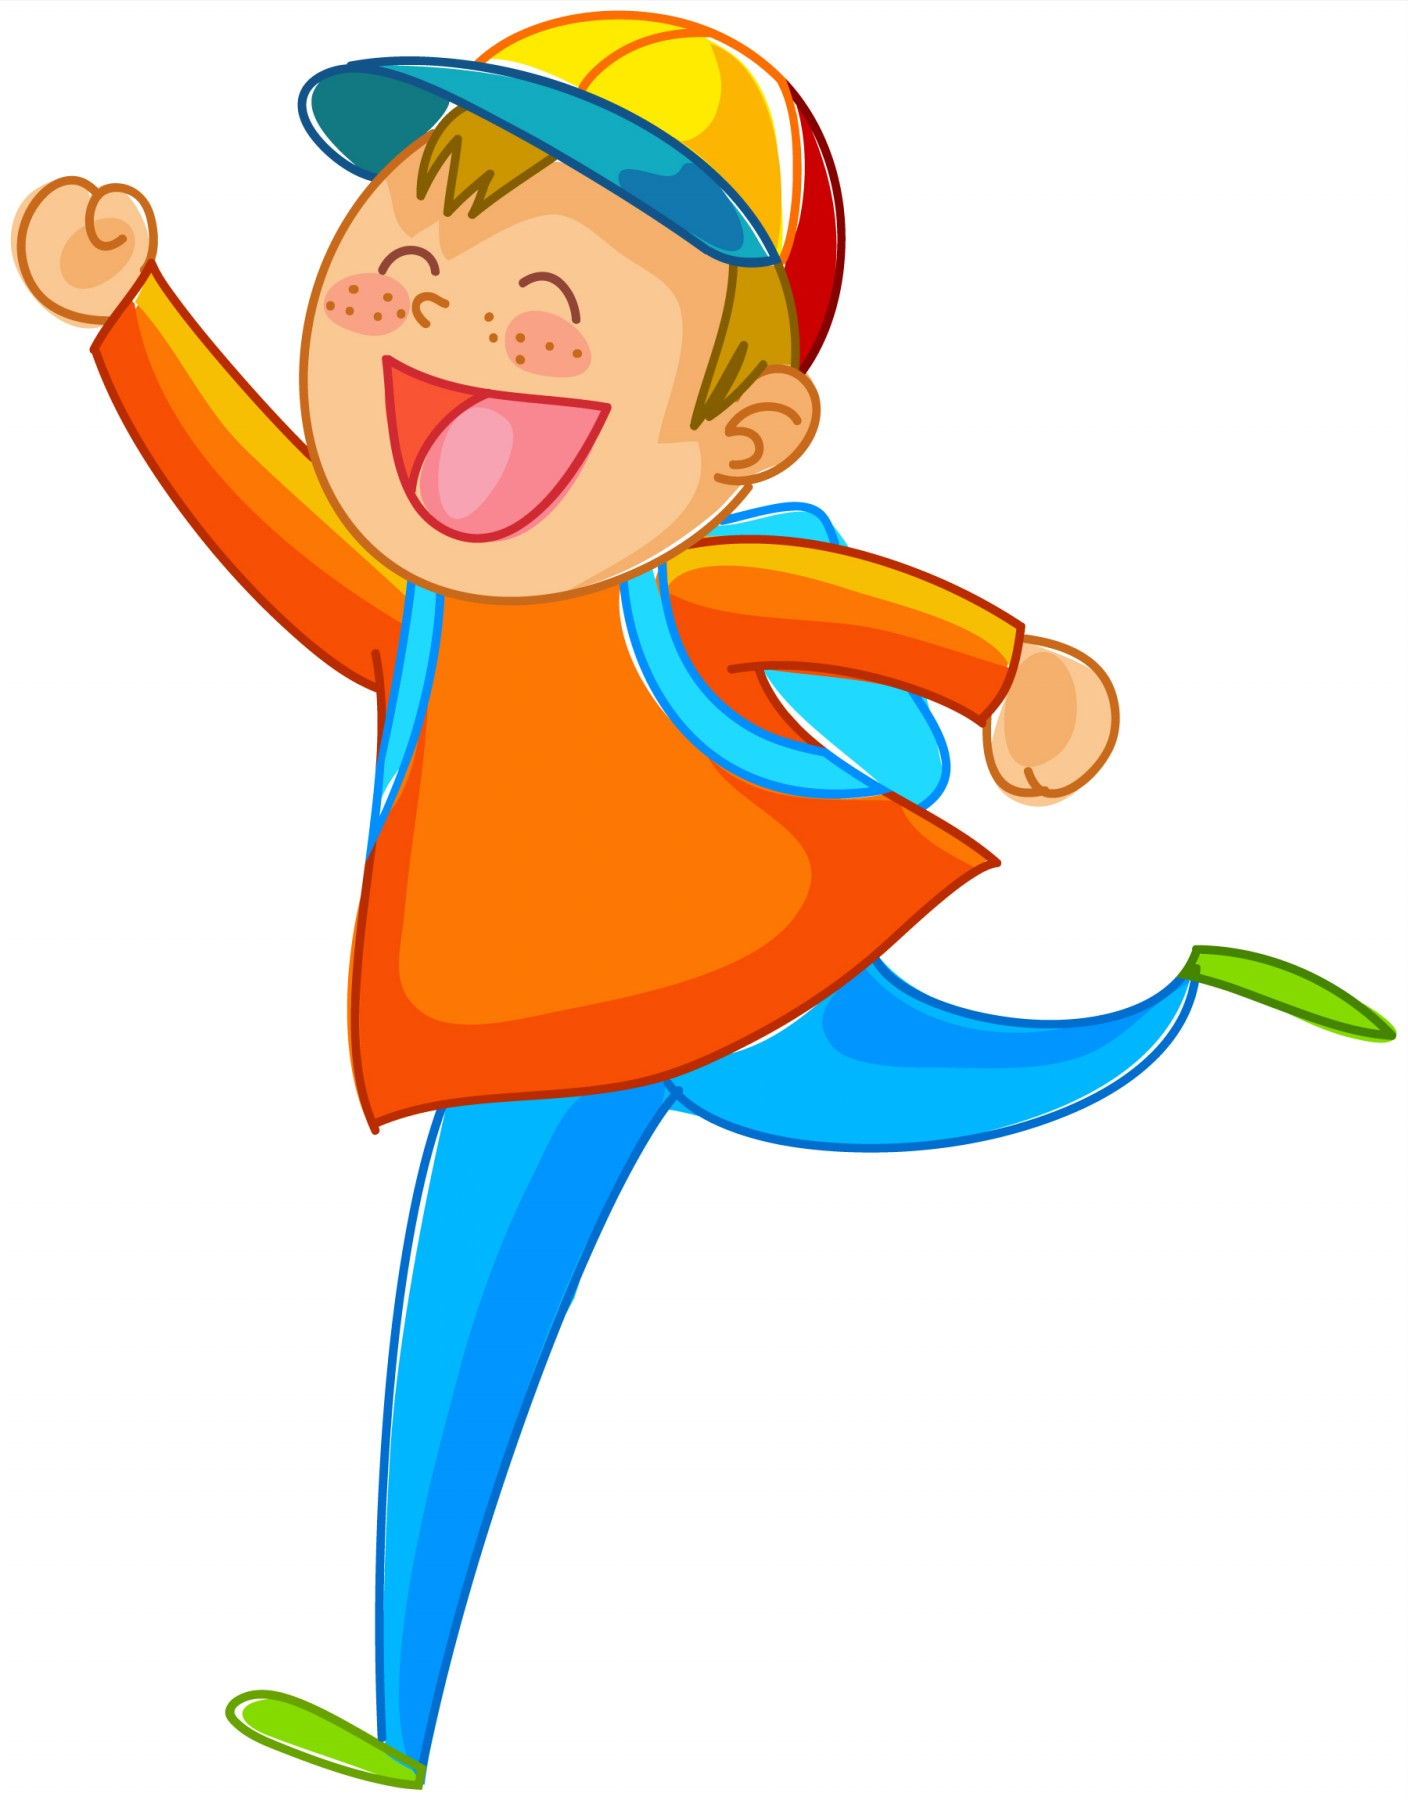 Funny Cartoon Pictures For Children - Cliparts.co